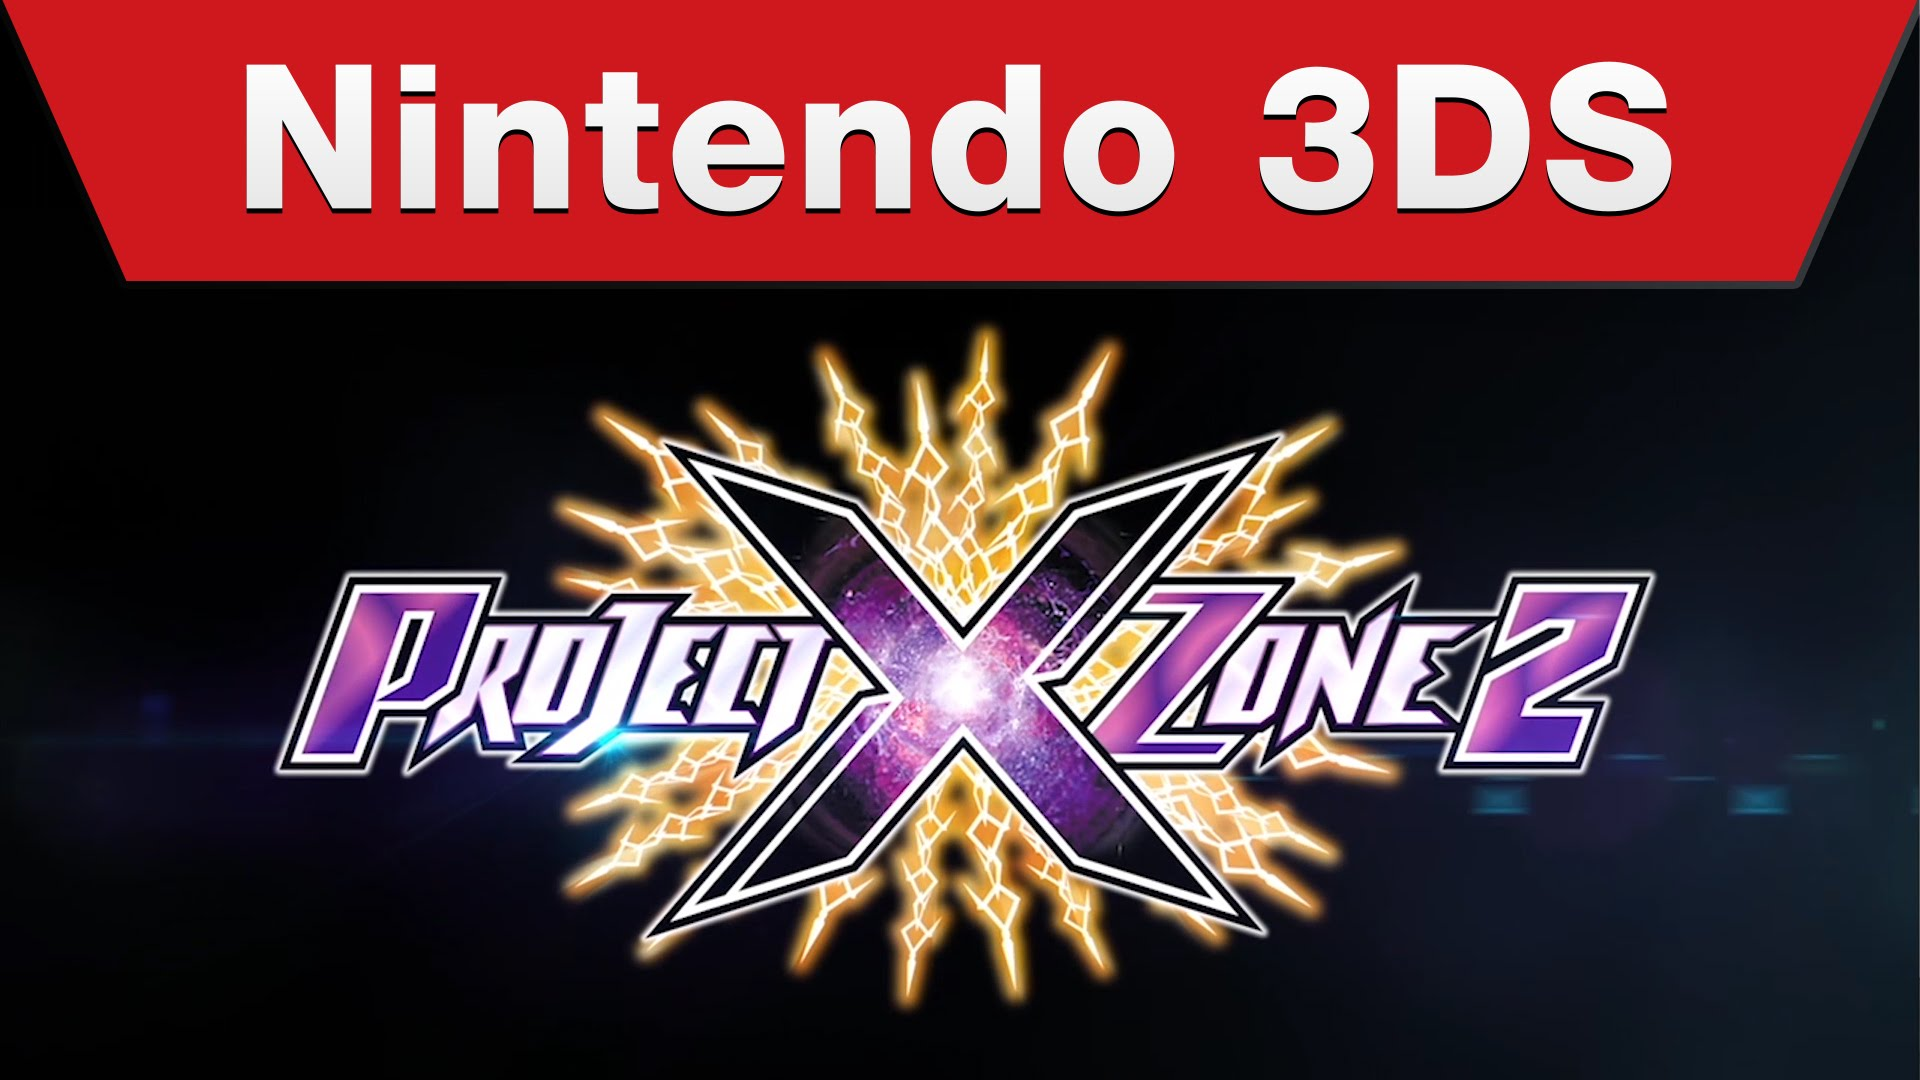 Project X Zone 2 Trailer